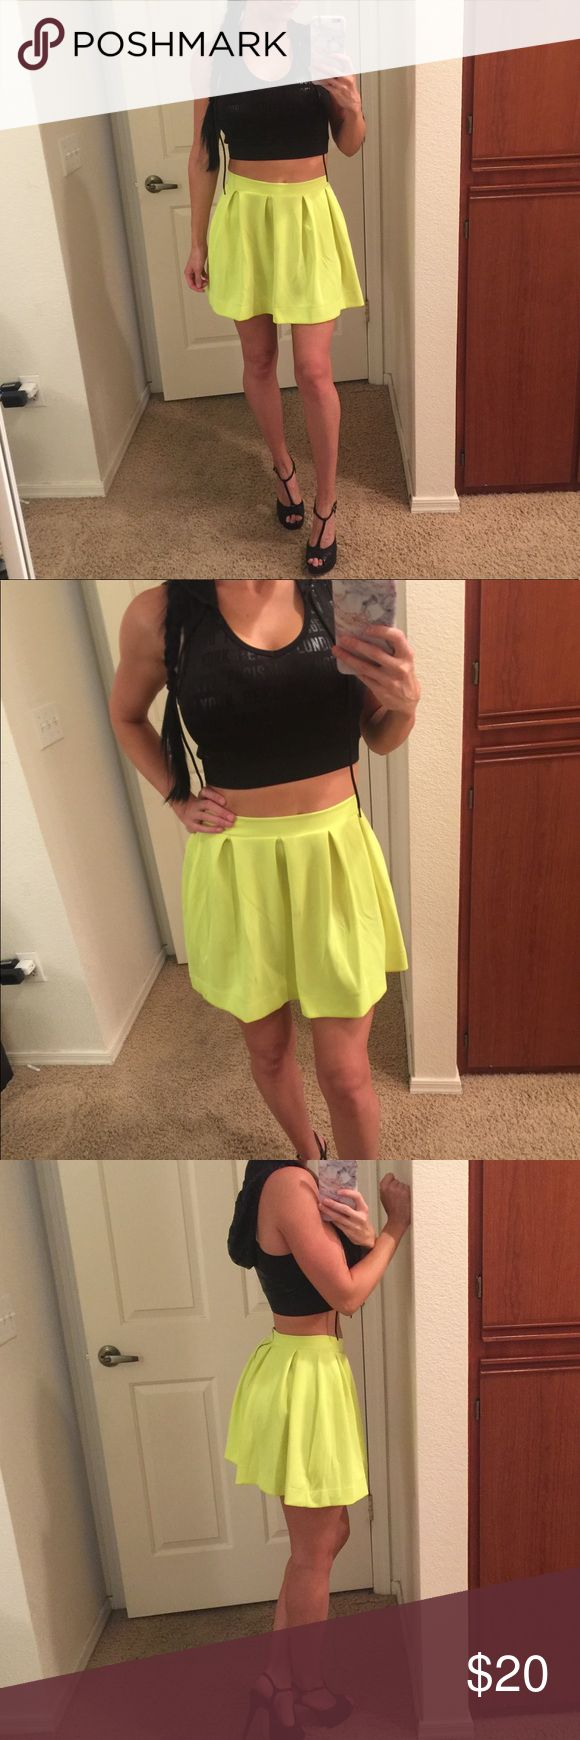 Neon Yellow Skater Skirt 💛 NEW WITHOUT TAGS! Super gorgeous highlighter yellow color! Has cute pleats and a zipper in the back! NOT Fashion Nova, just for exposure. Fashion Nova Skirts Mini